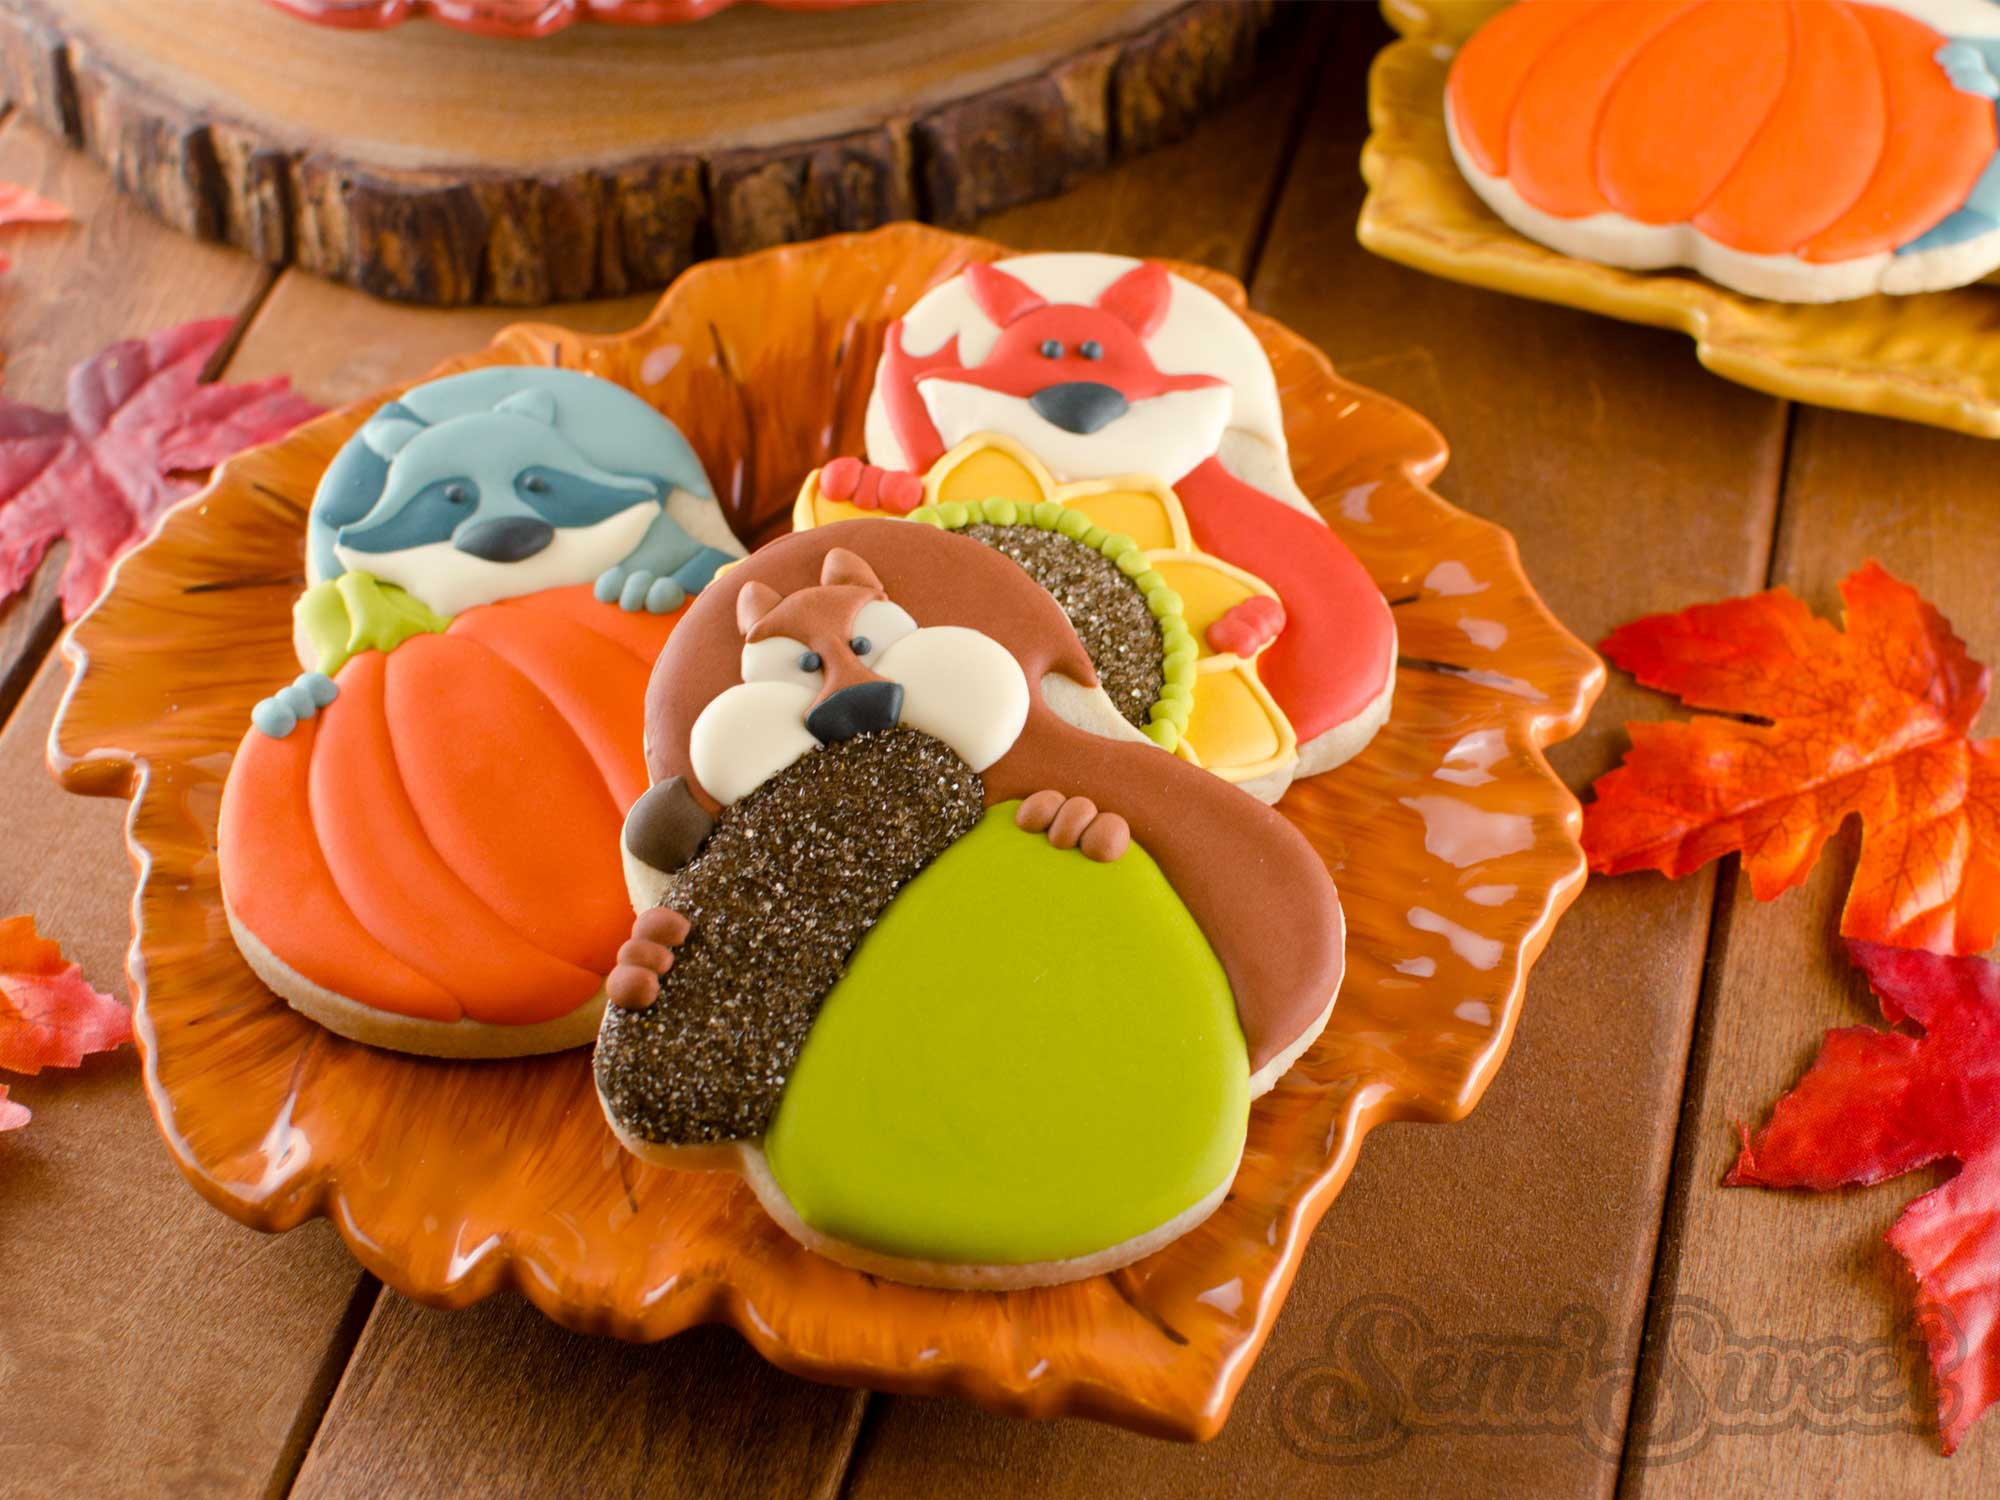 How to Add Bushy-Tailed Animals to Any Cookie